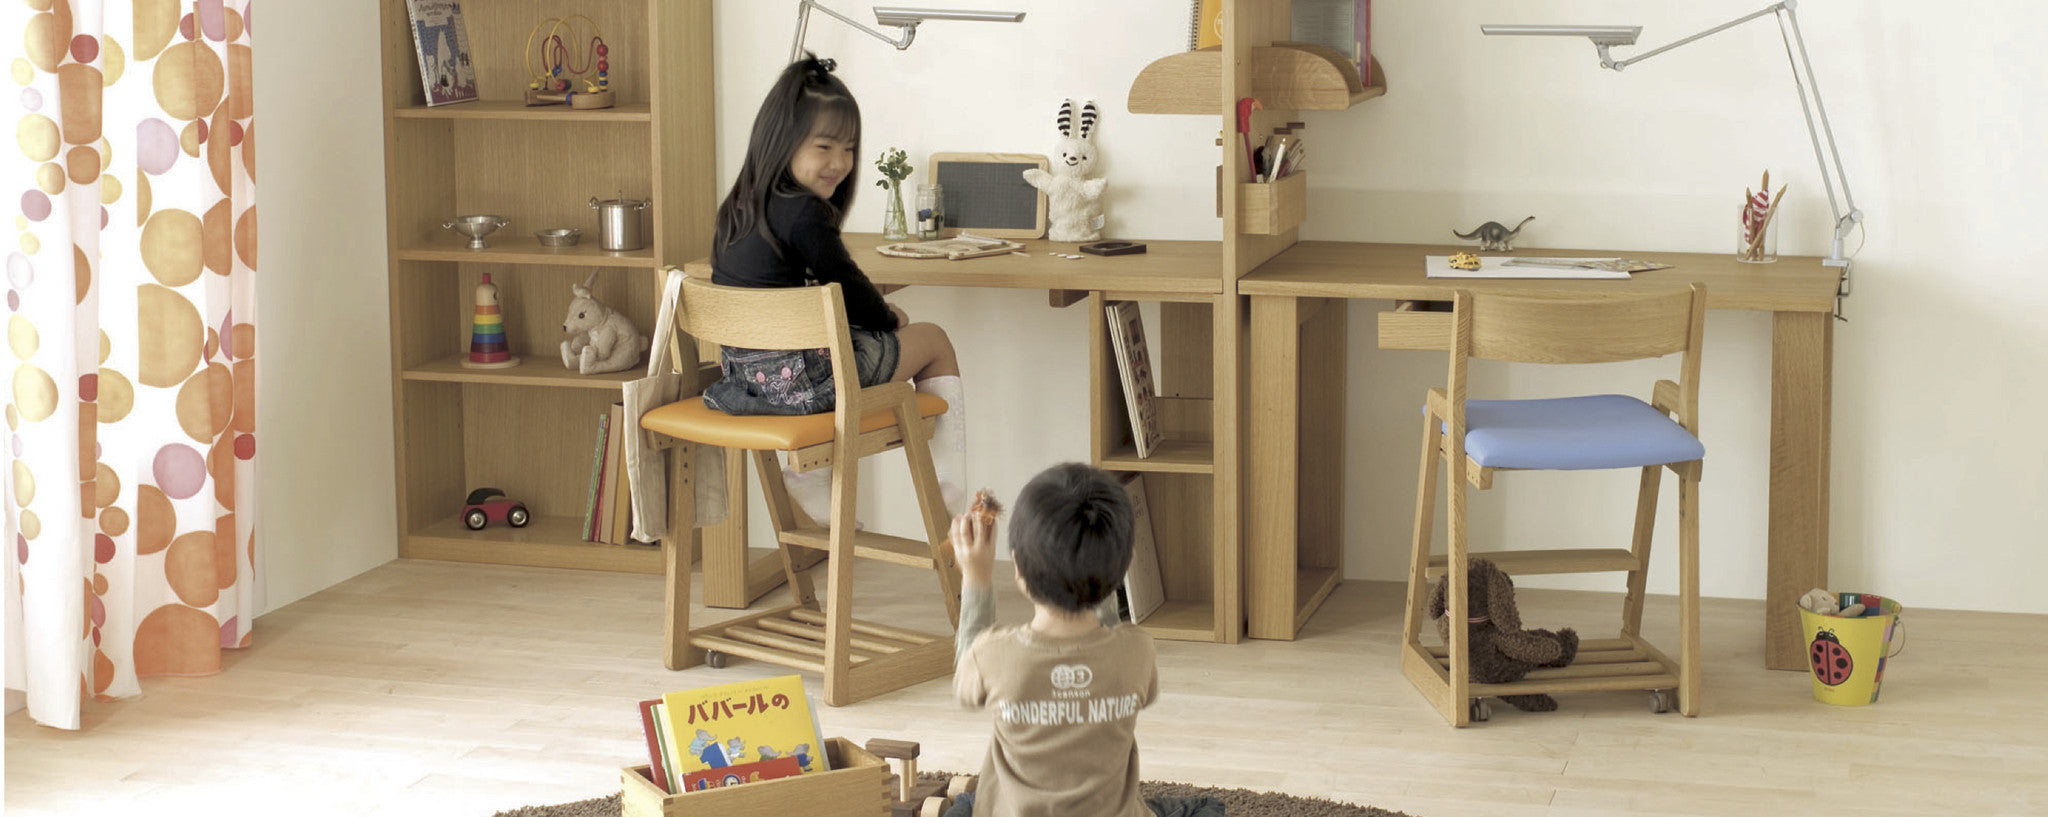 Fun And Playful As Well As Beautiful To Look At, The Baby And Kidu0027s  Furniture In This Collection Is Perfect For Your Child. From Colorful High  Chairs To ...